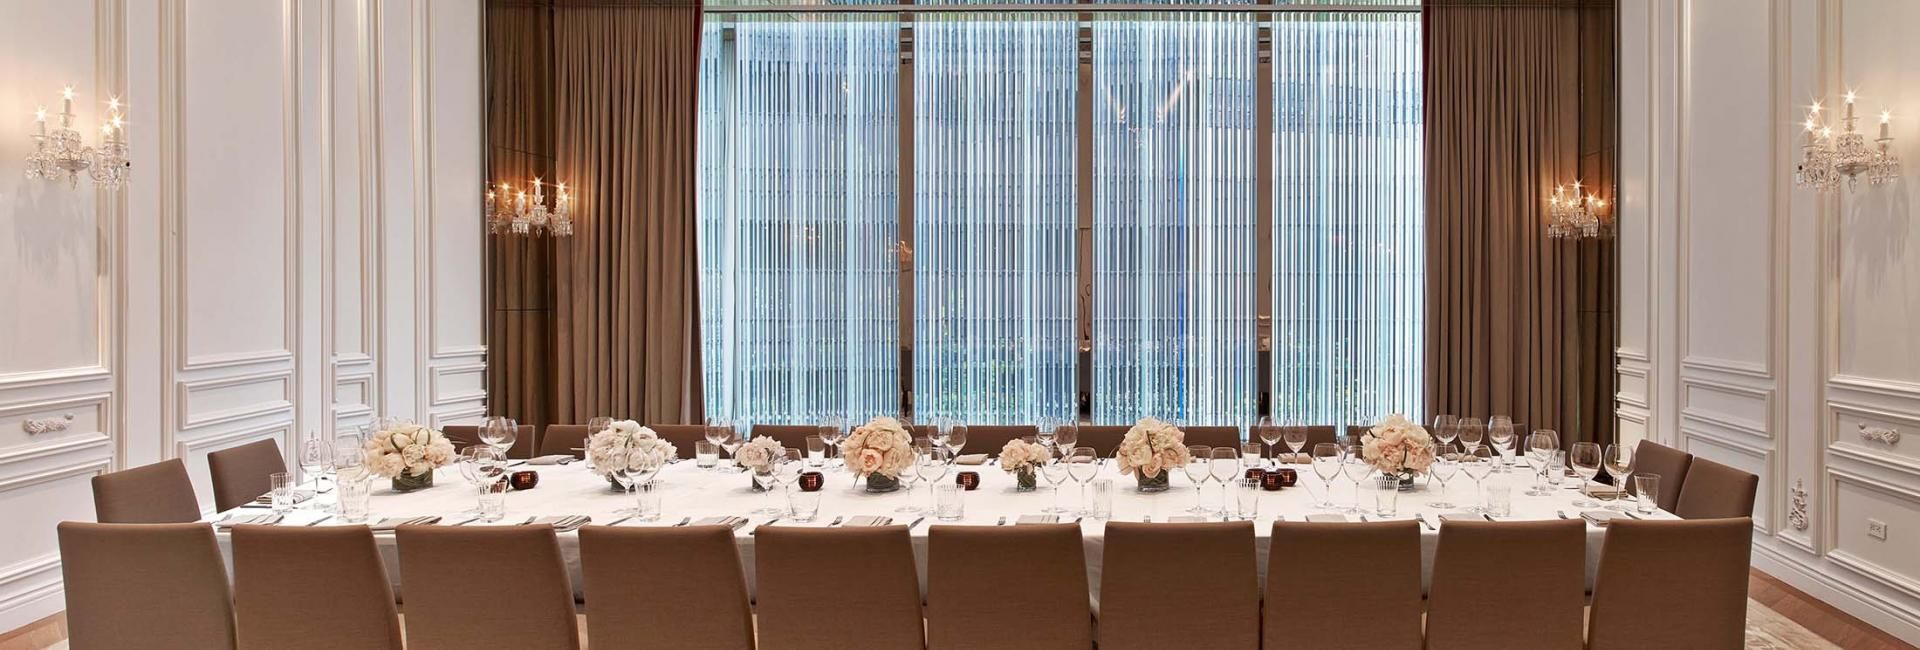 A long table in a meeting room at the Baccarat hotel